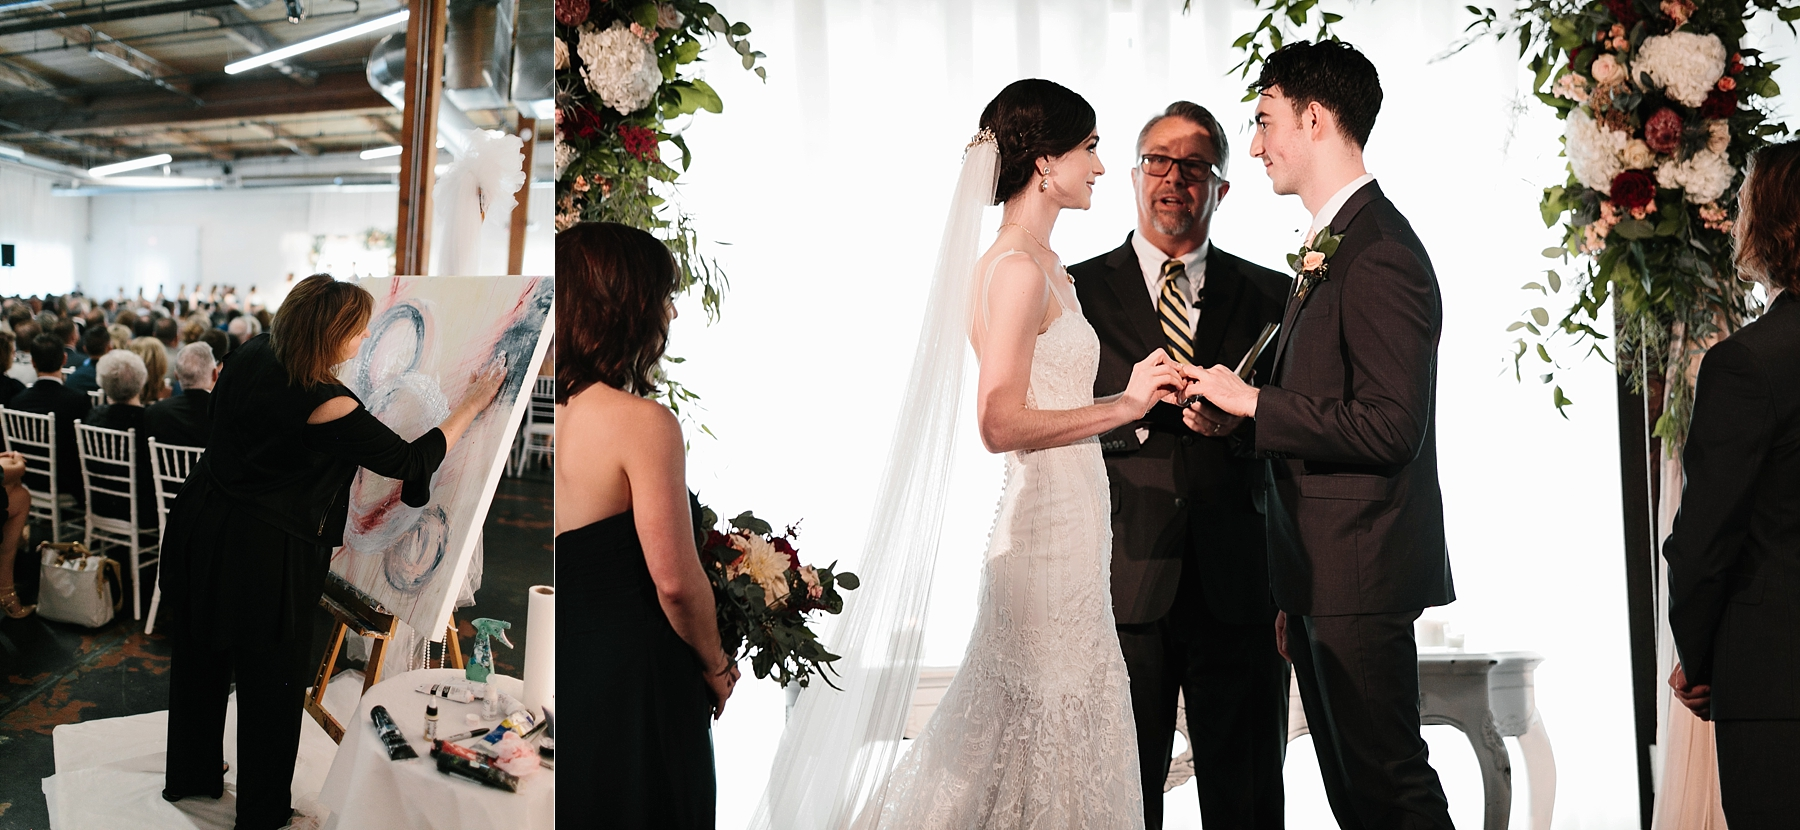 Emily + Caleb _ an elegant, intentional, industrial style wedding with navy + gold accents at 6500 in Dallas, TX by North Texas Wedding Photographer Rachel Meagan Photography _ 090